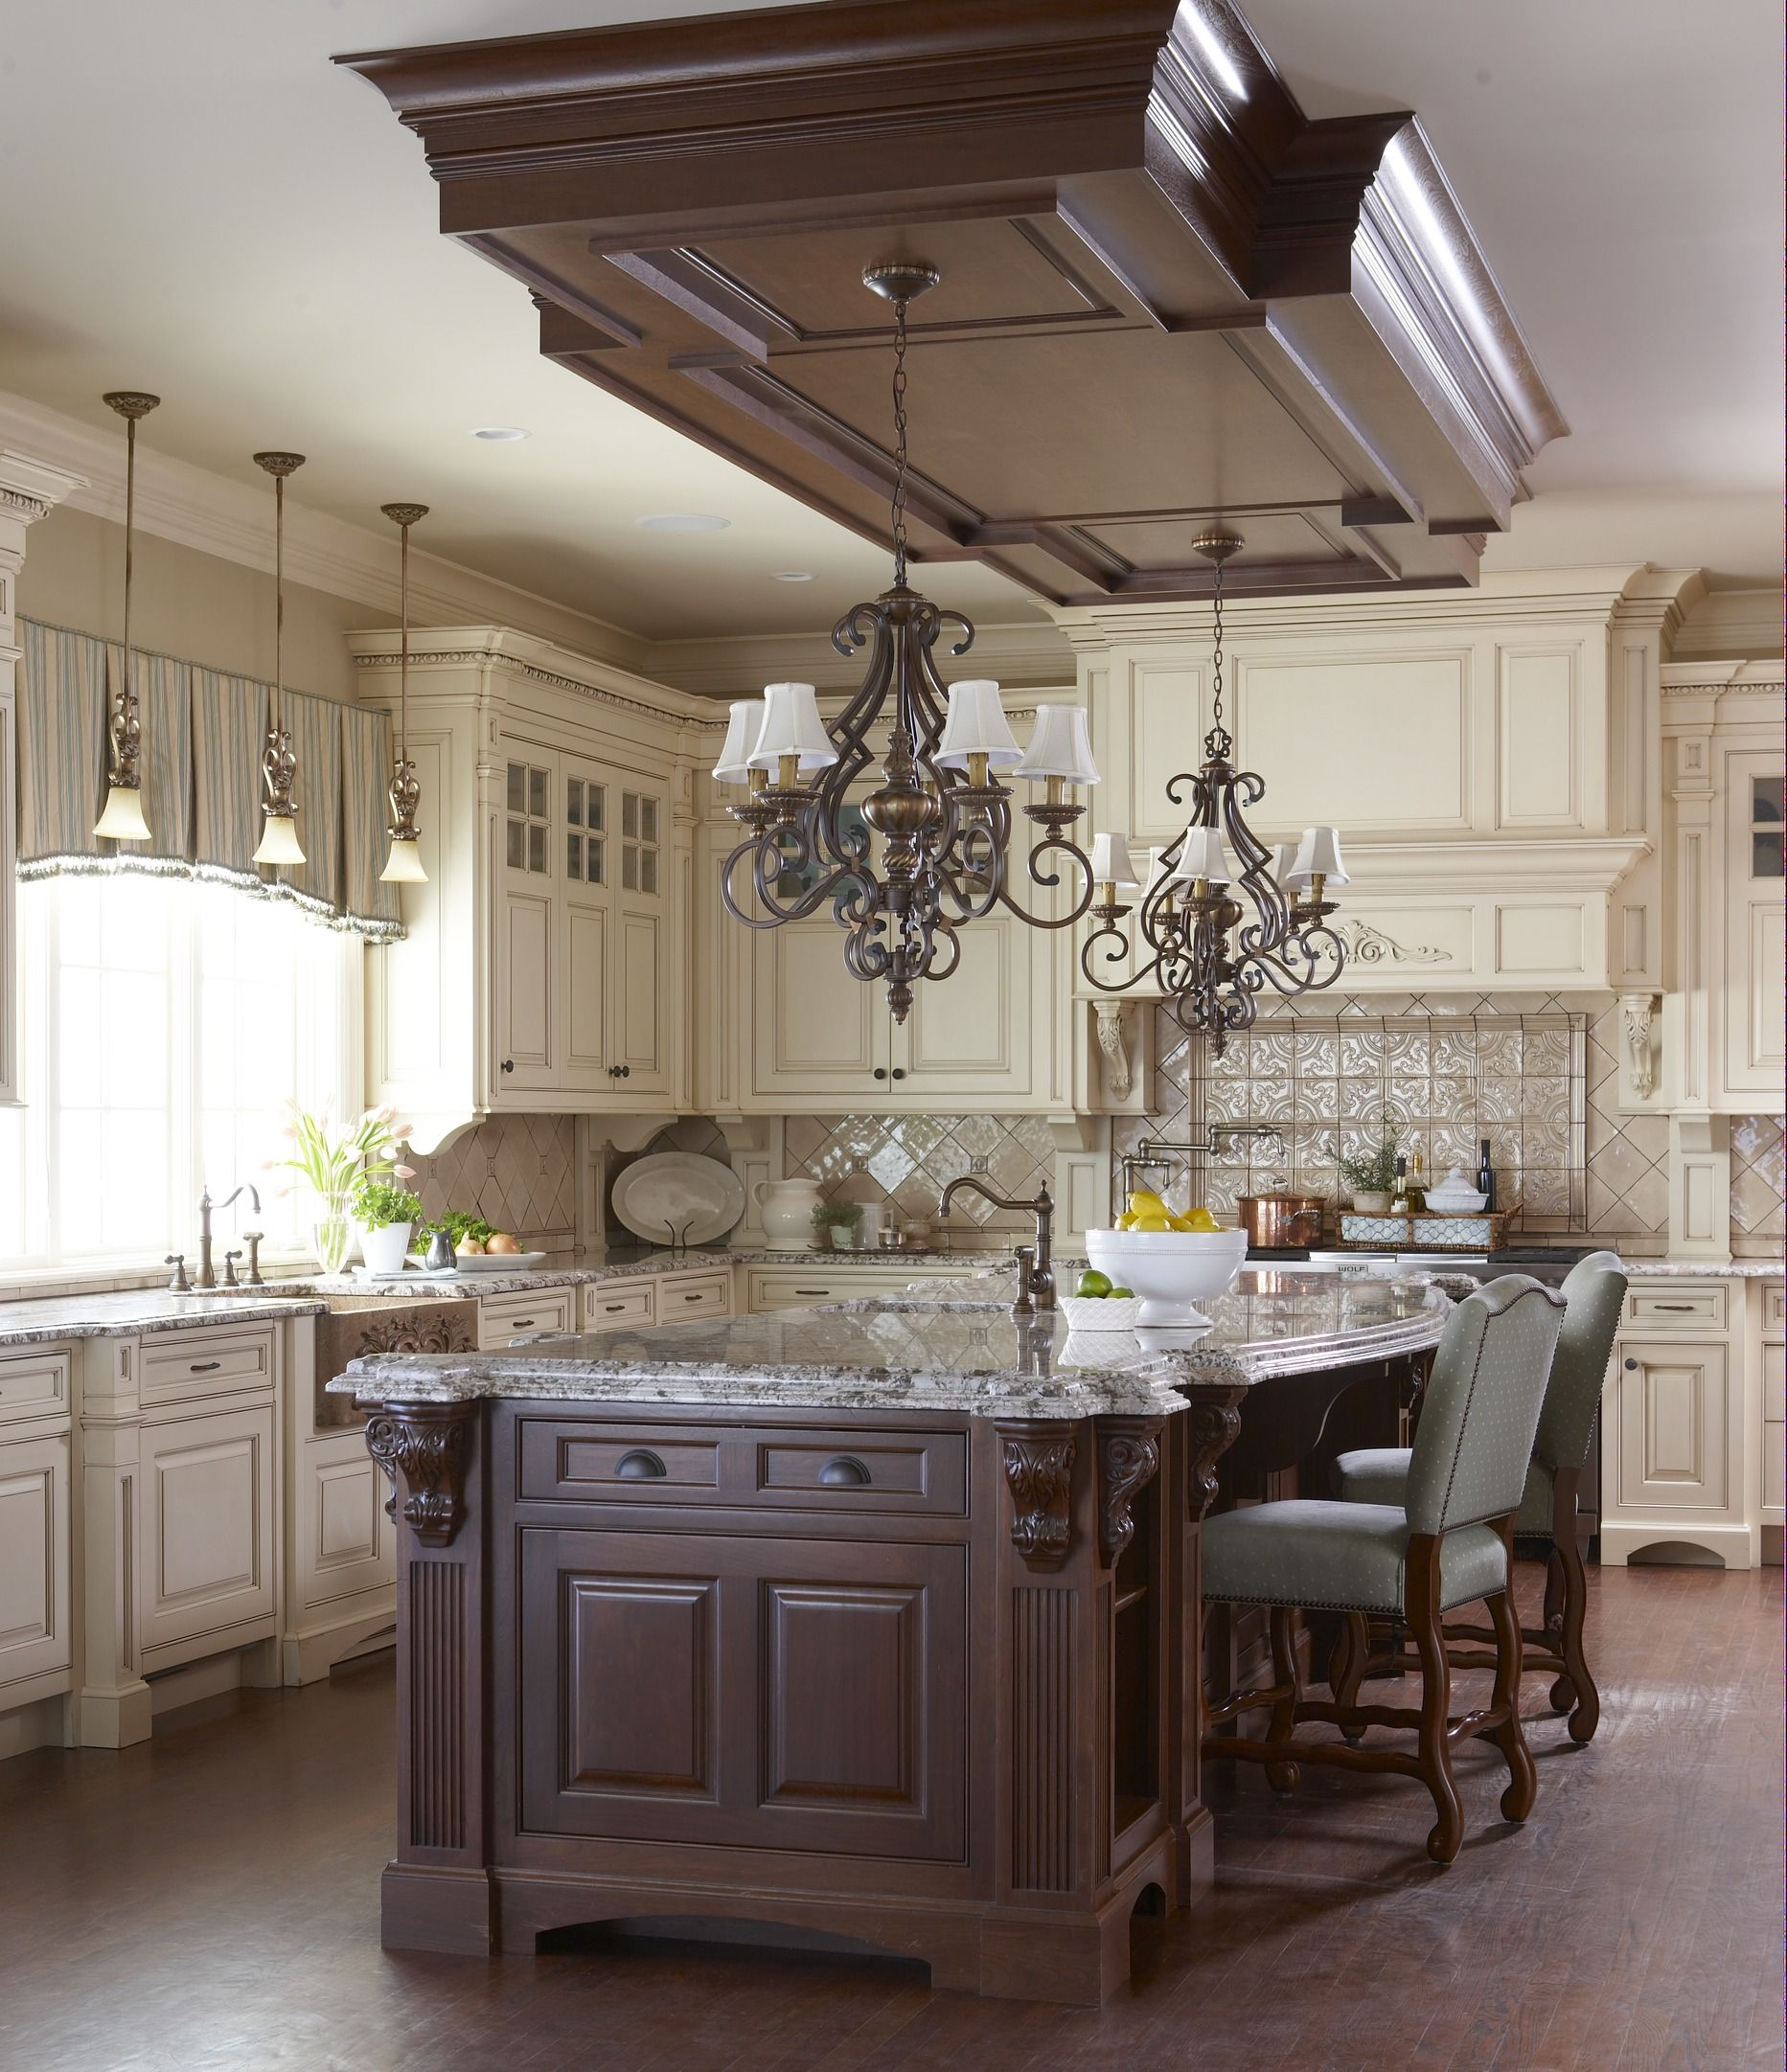 Traditionalhome Design Ideas: Inside This Issue: Dream Kitchens & Baths